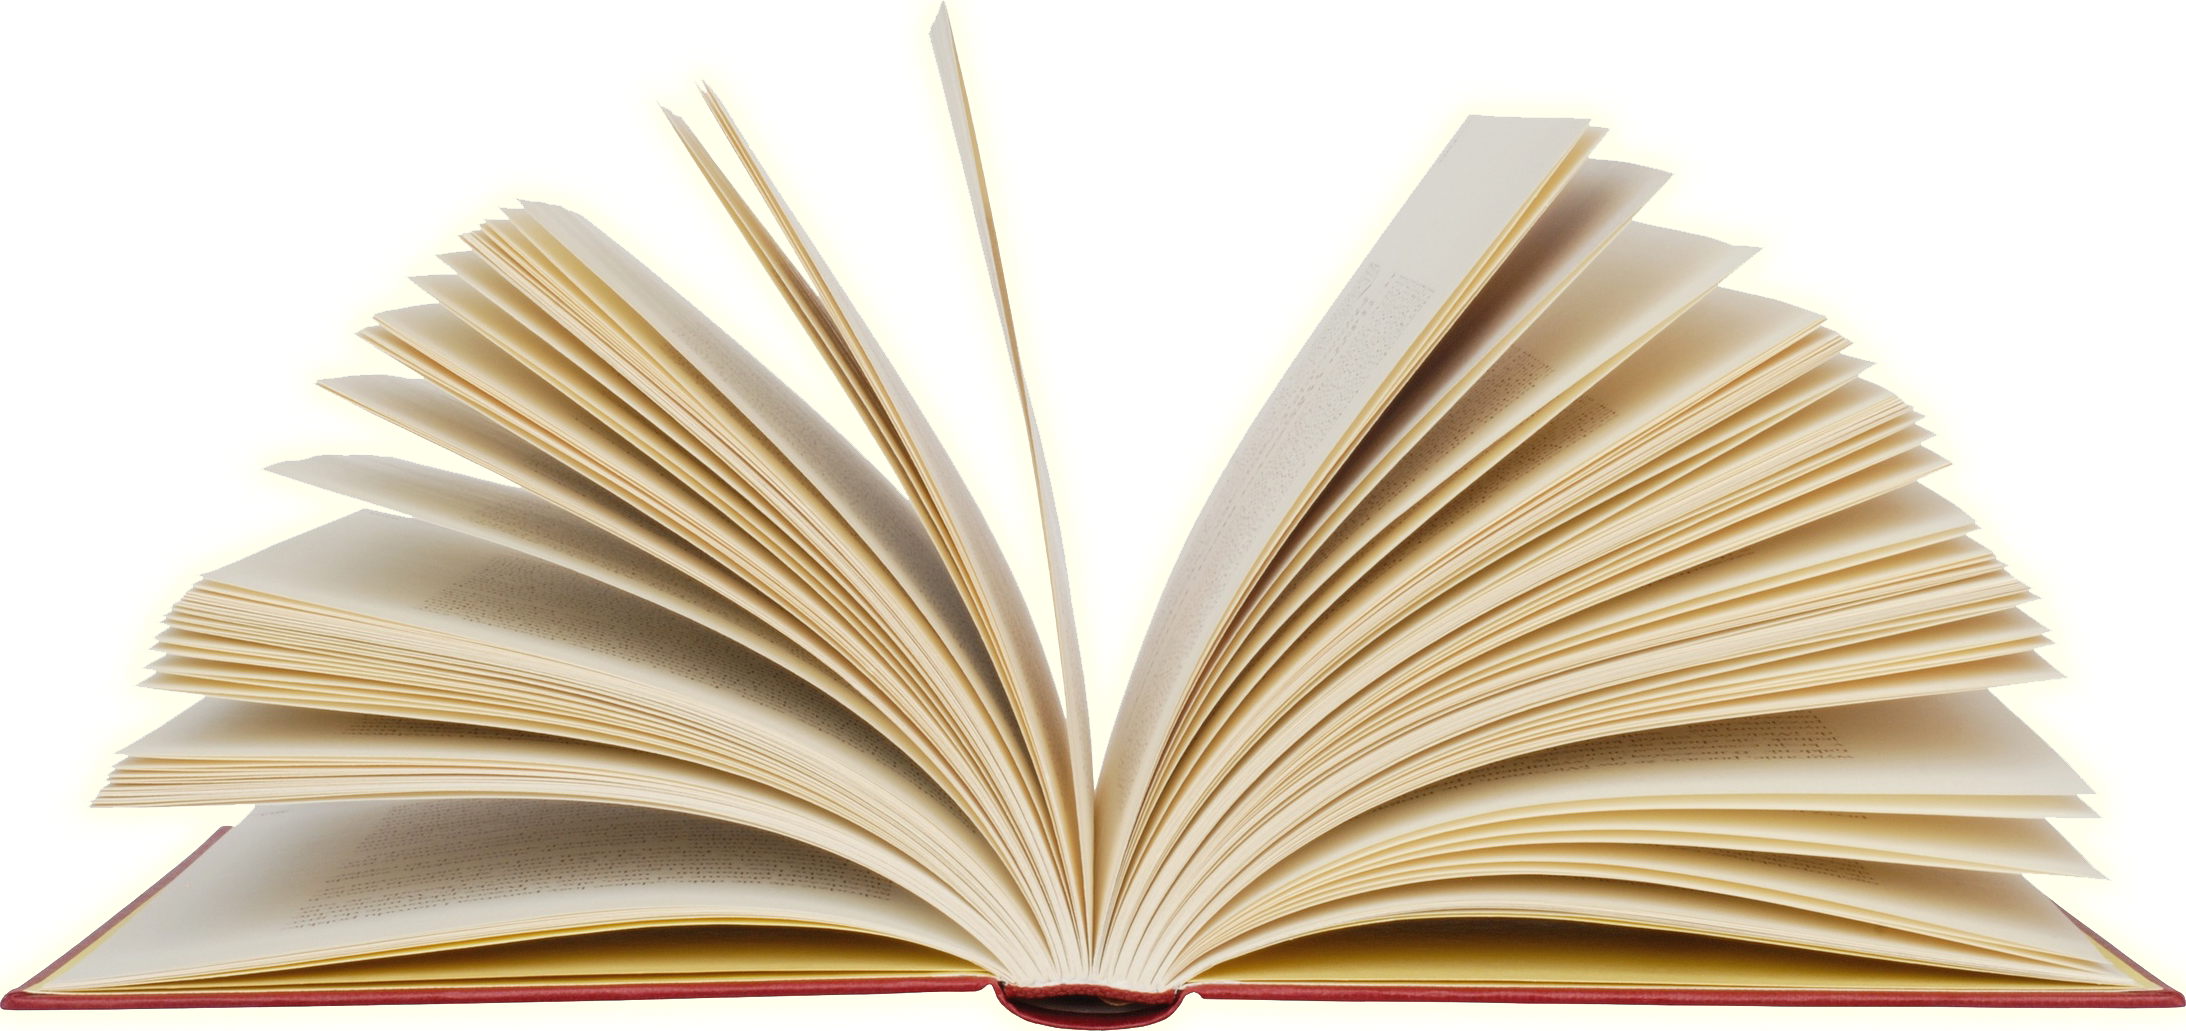 Book HD PNG Transparent Book HD.PNG Images. | PlusPNG